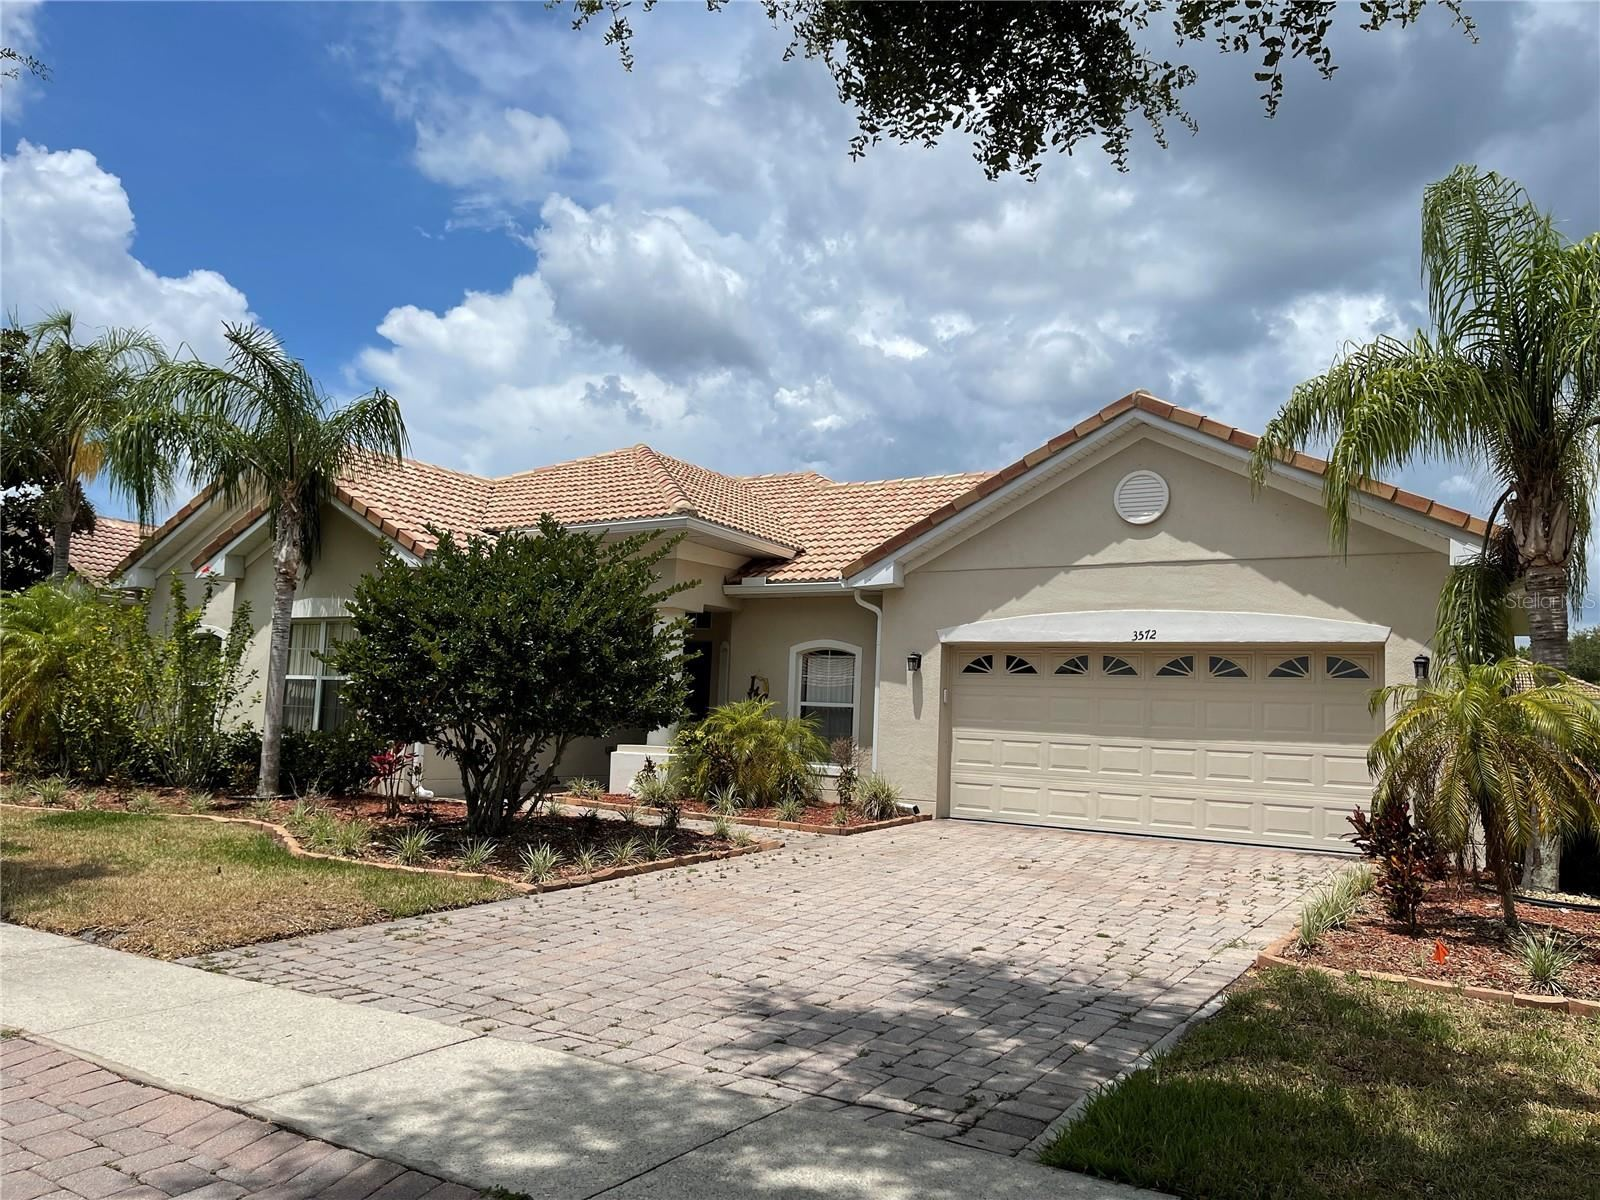 3572 VALLEYVIEW DRIVE, Kissimmee, FL 34746 - #: O5951521